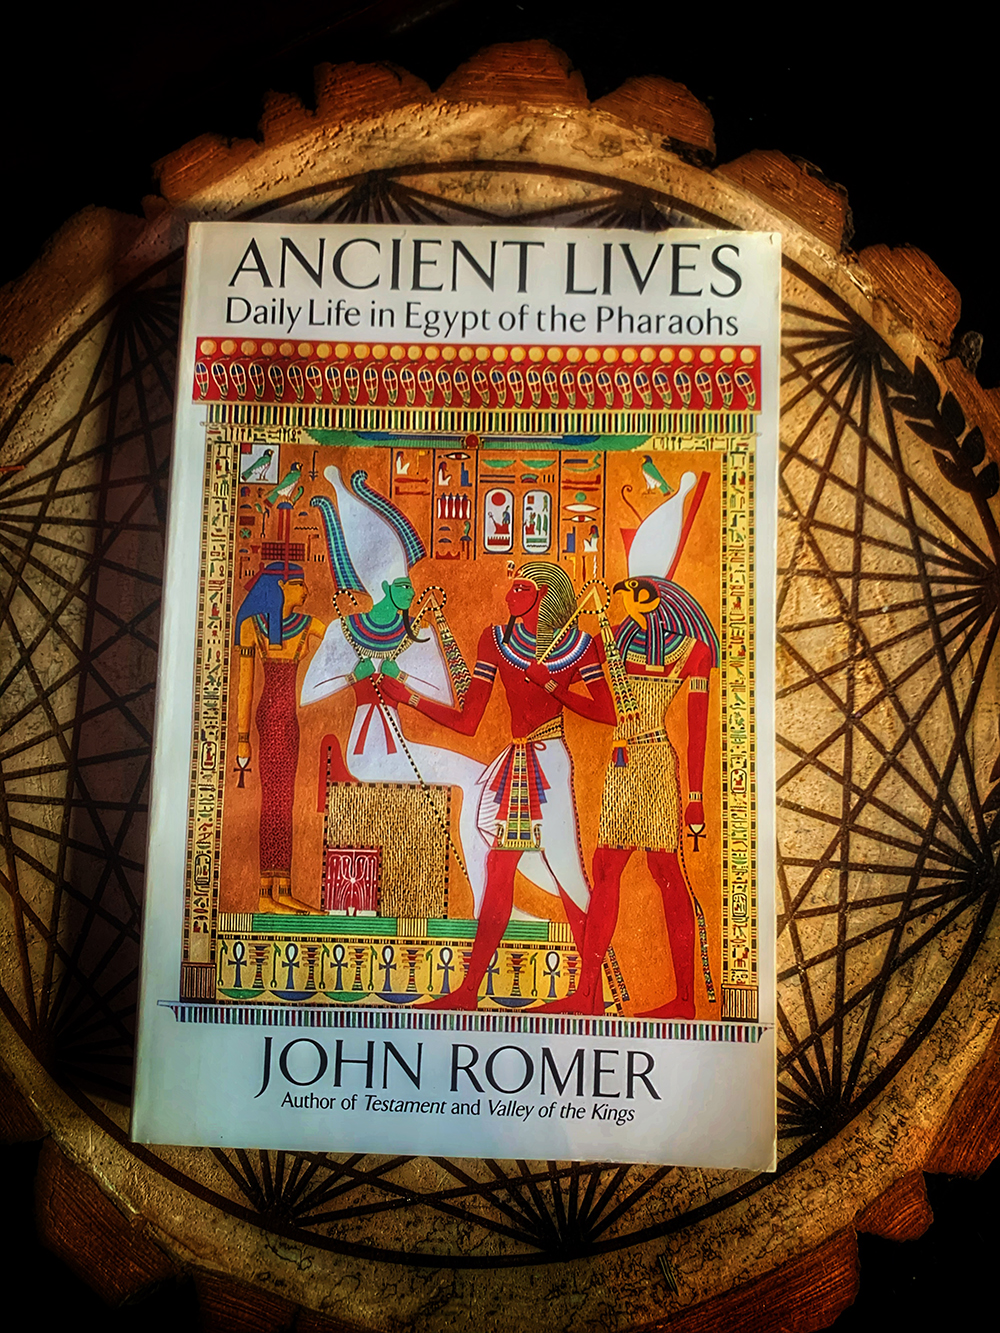 Describes the daily life of washermen, goat herders, fishermen, craftsmen, and other laborers three thousand years ago in an Egyptian village